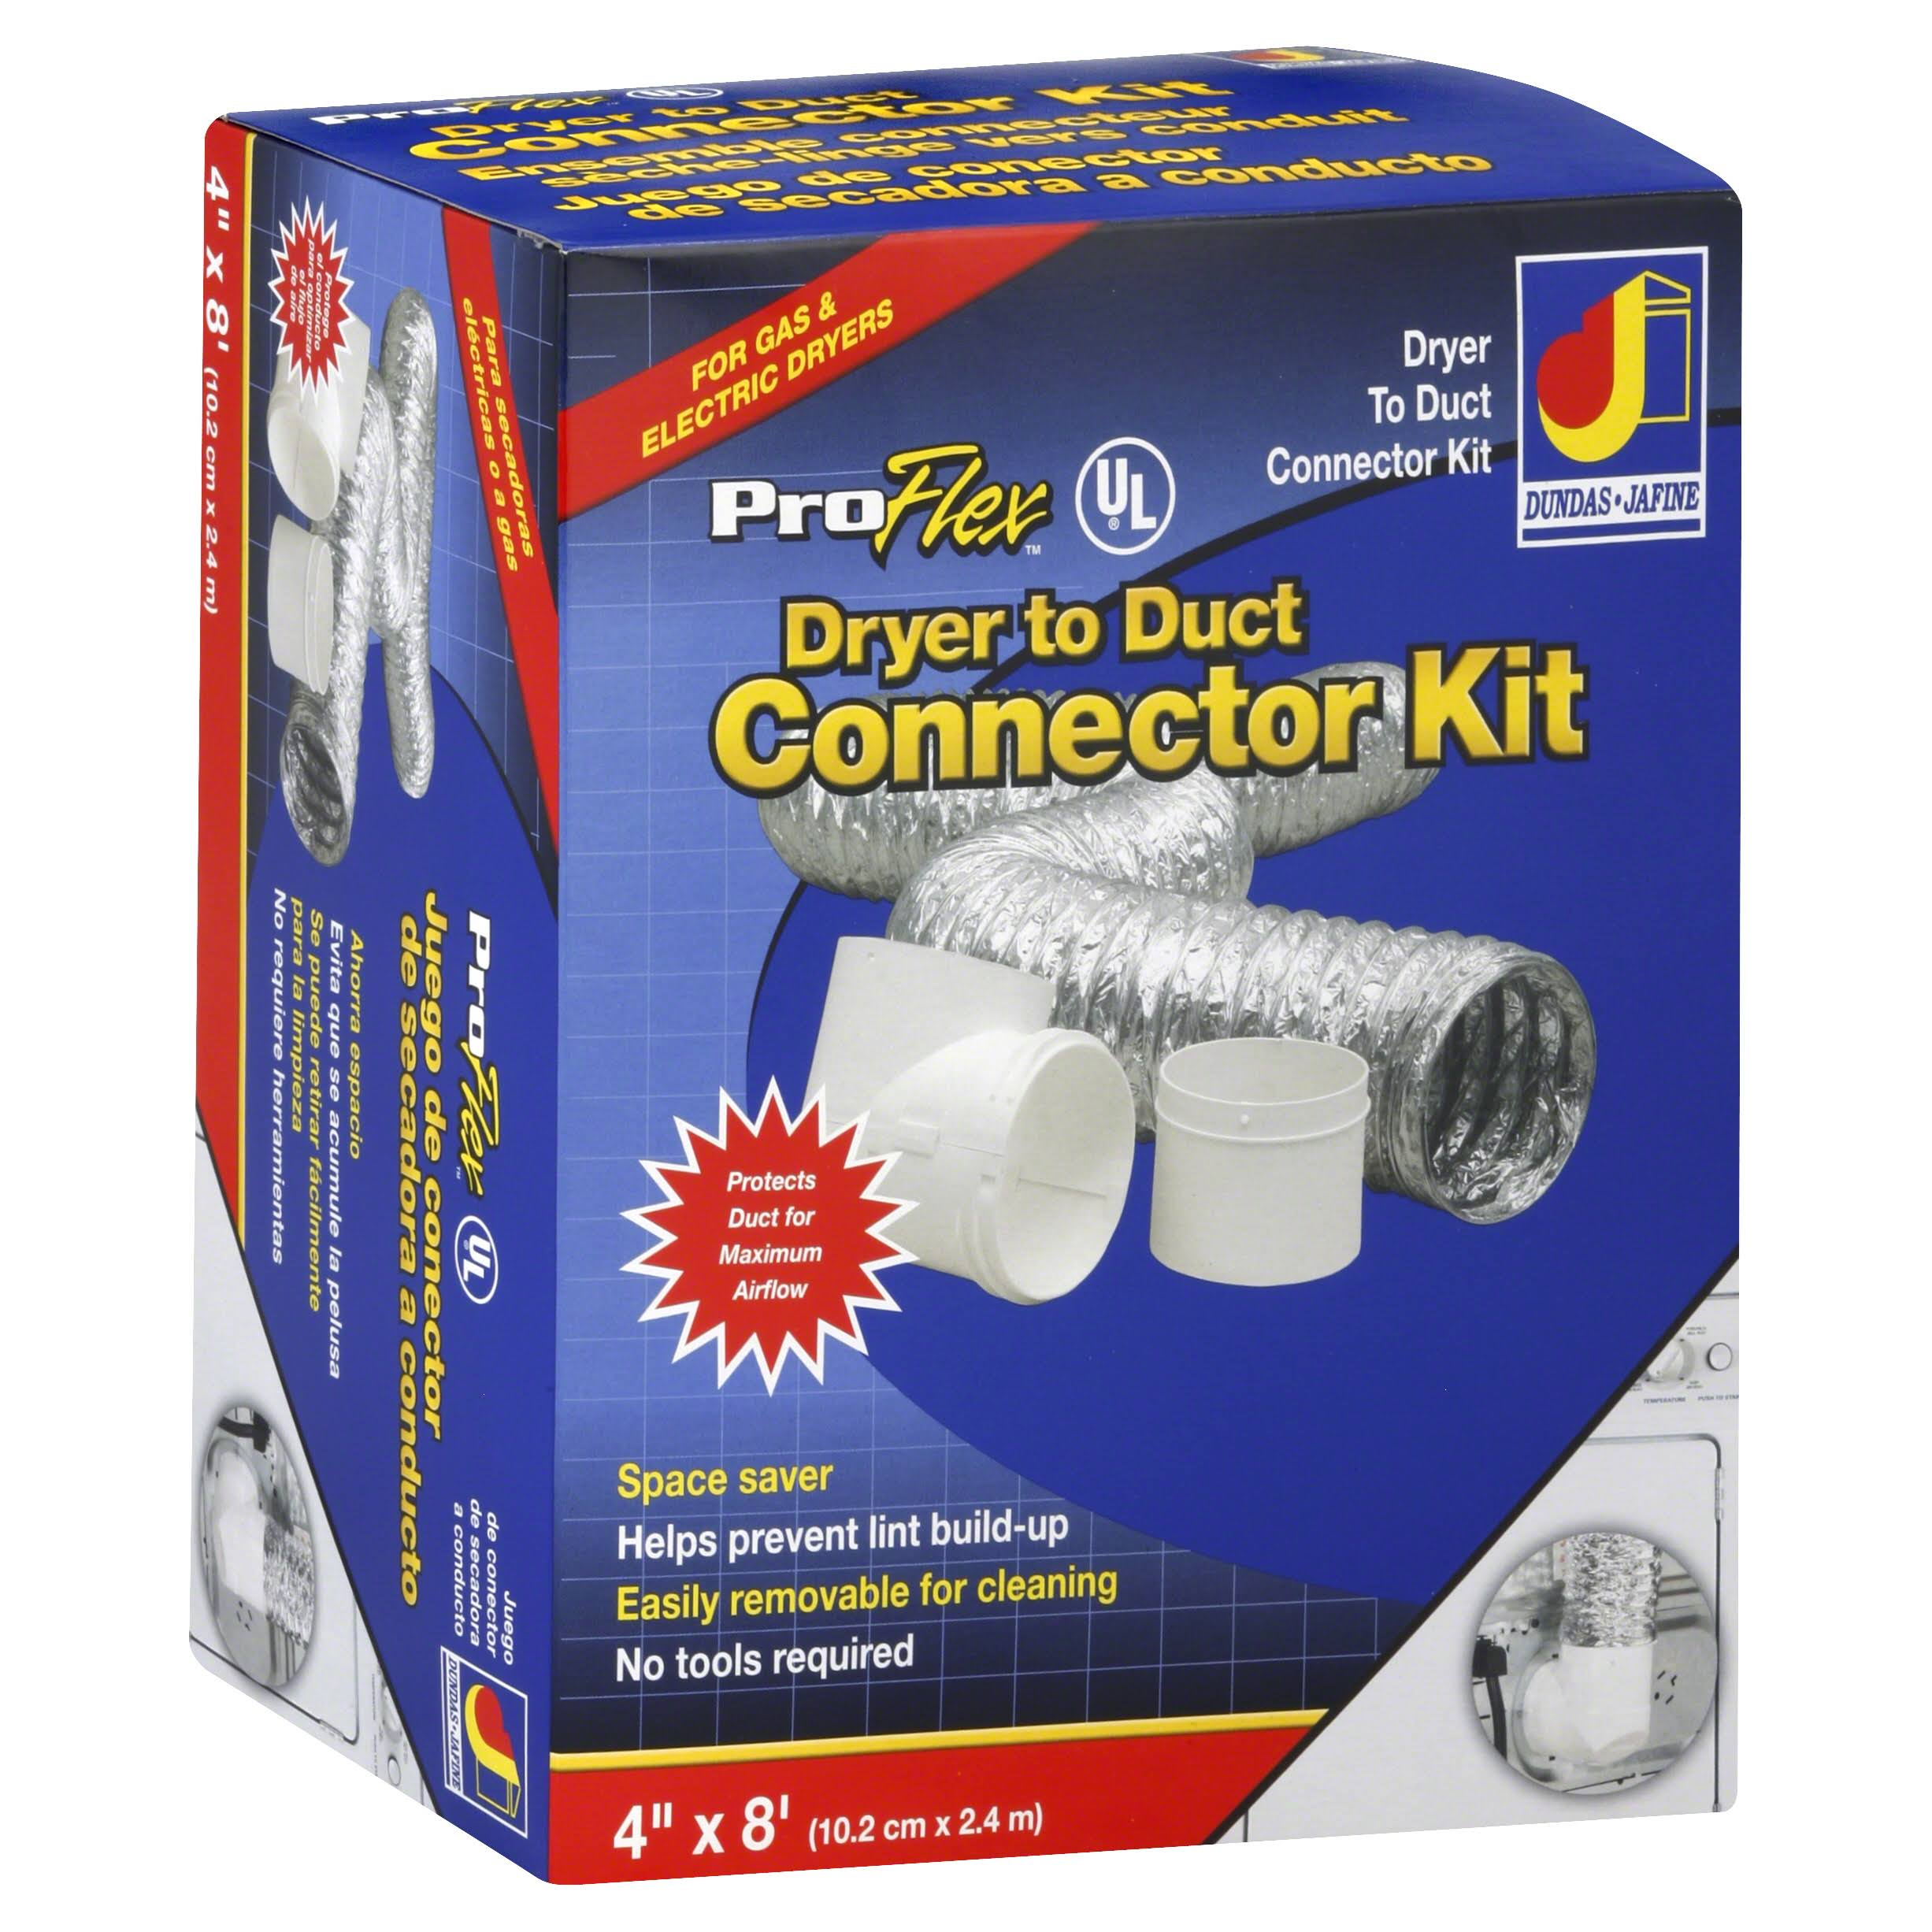 "Dundas Jafine Dryer To Duct Connector Kit with ProFlex Duct - 4"" x 8'"